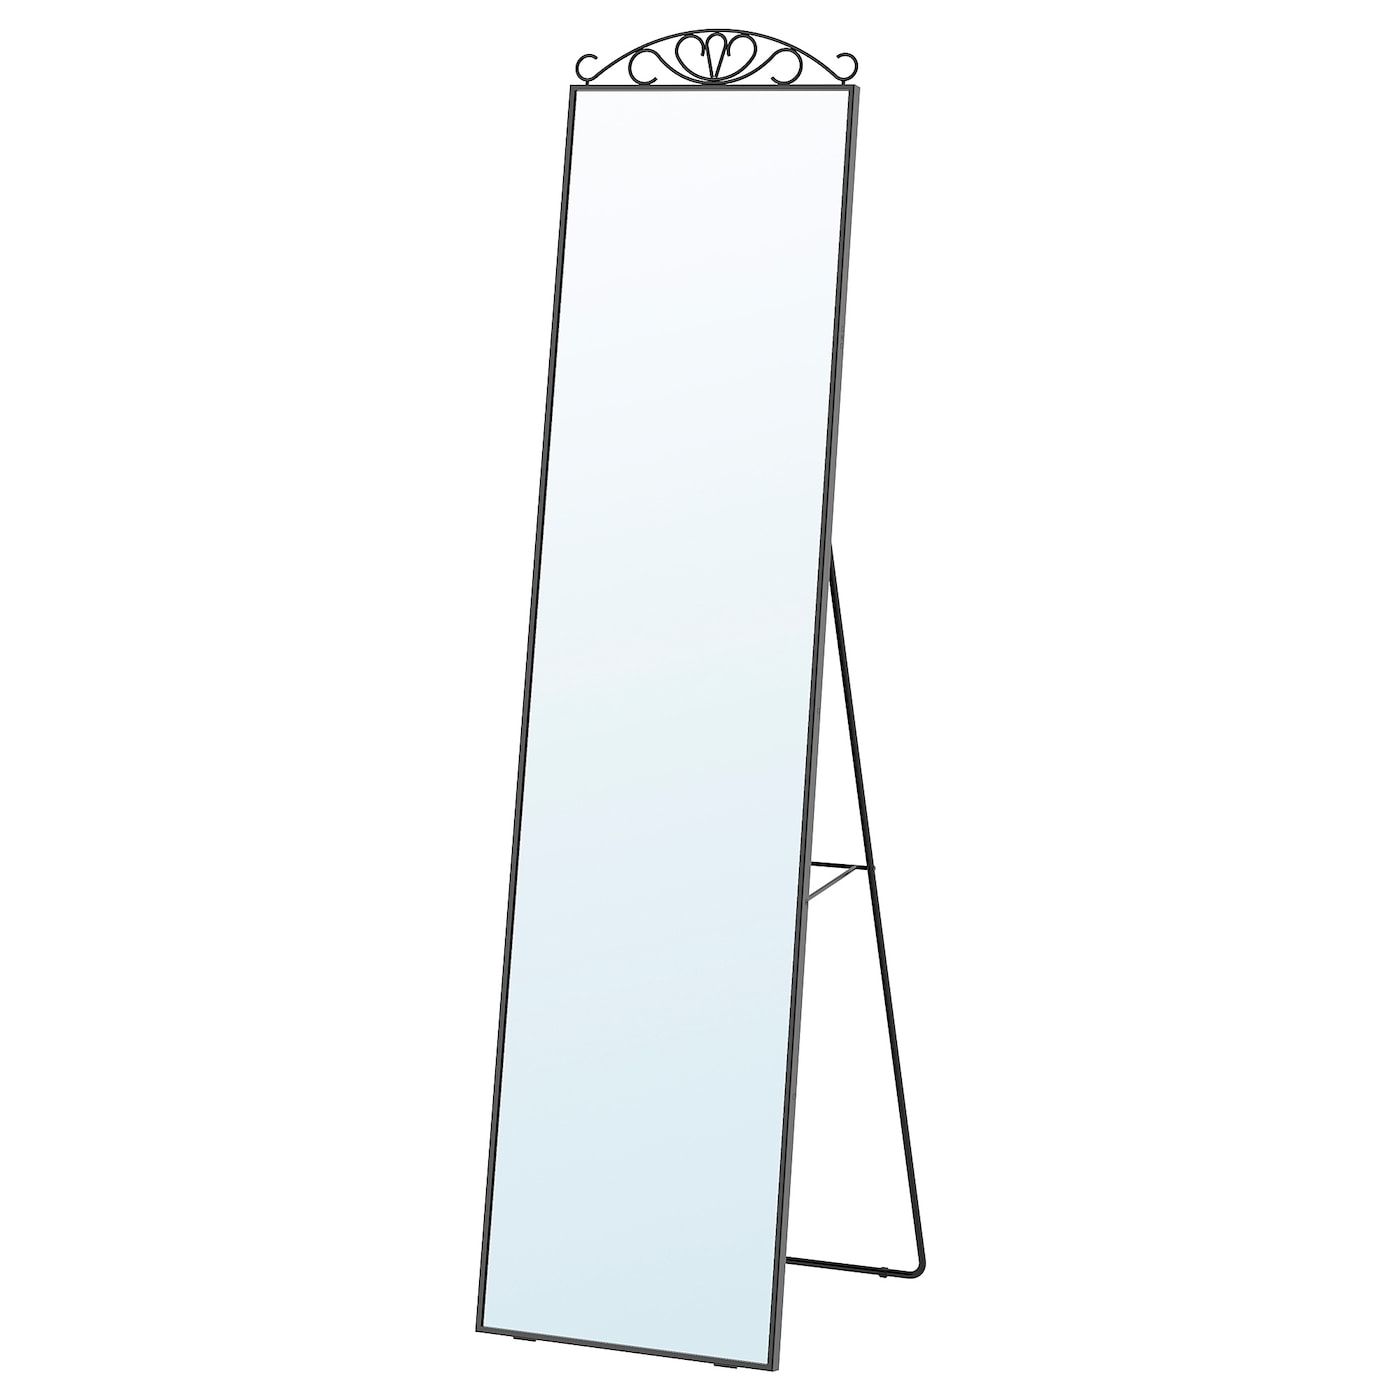 IKEA KARMSUND standing mirror You can place the mirror on the floor or hang it on the wall.